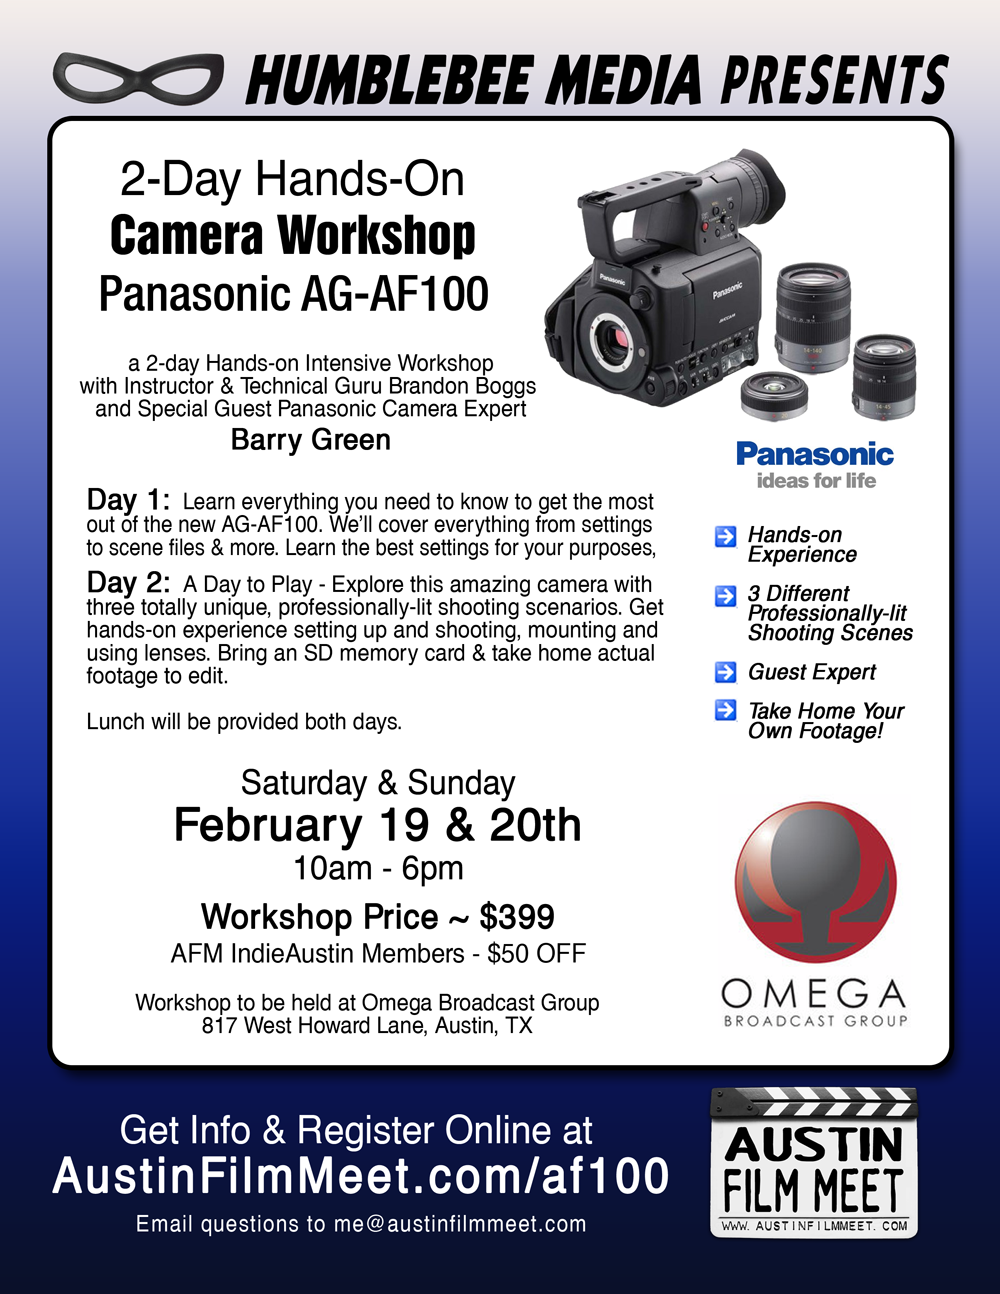 Saturday & Sunday, February 19-20 – AFM 2-Day Intensive Camera Training Workshop: Panasonic AG-AF100